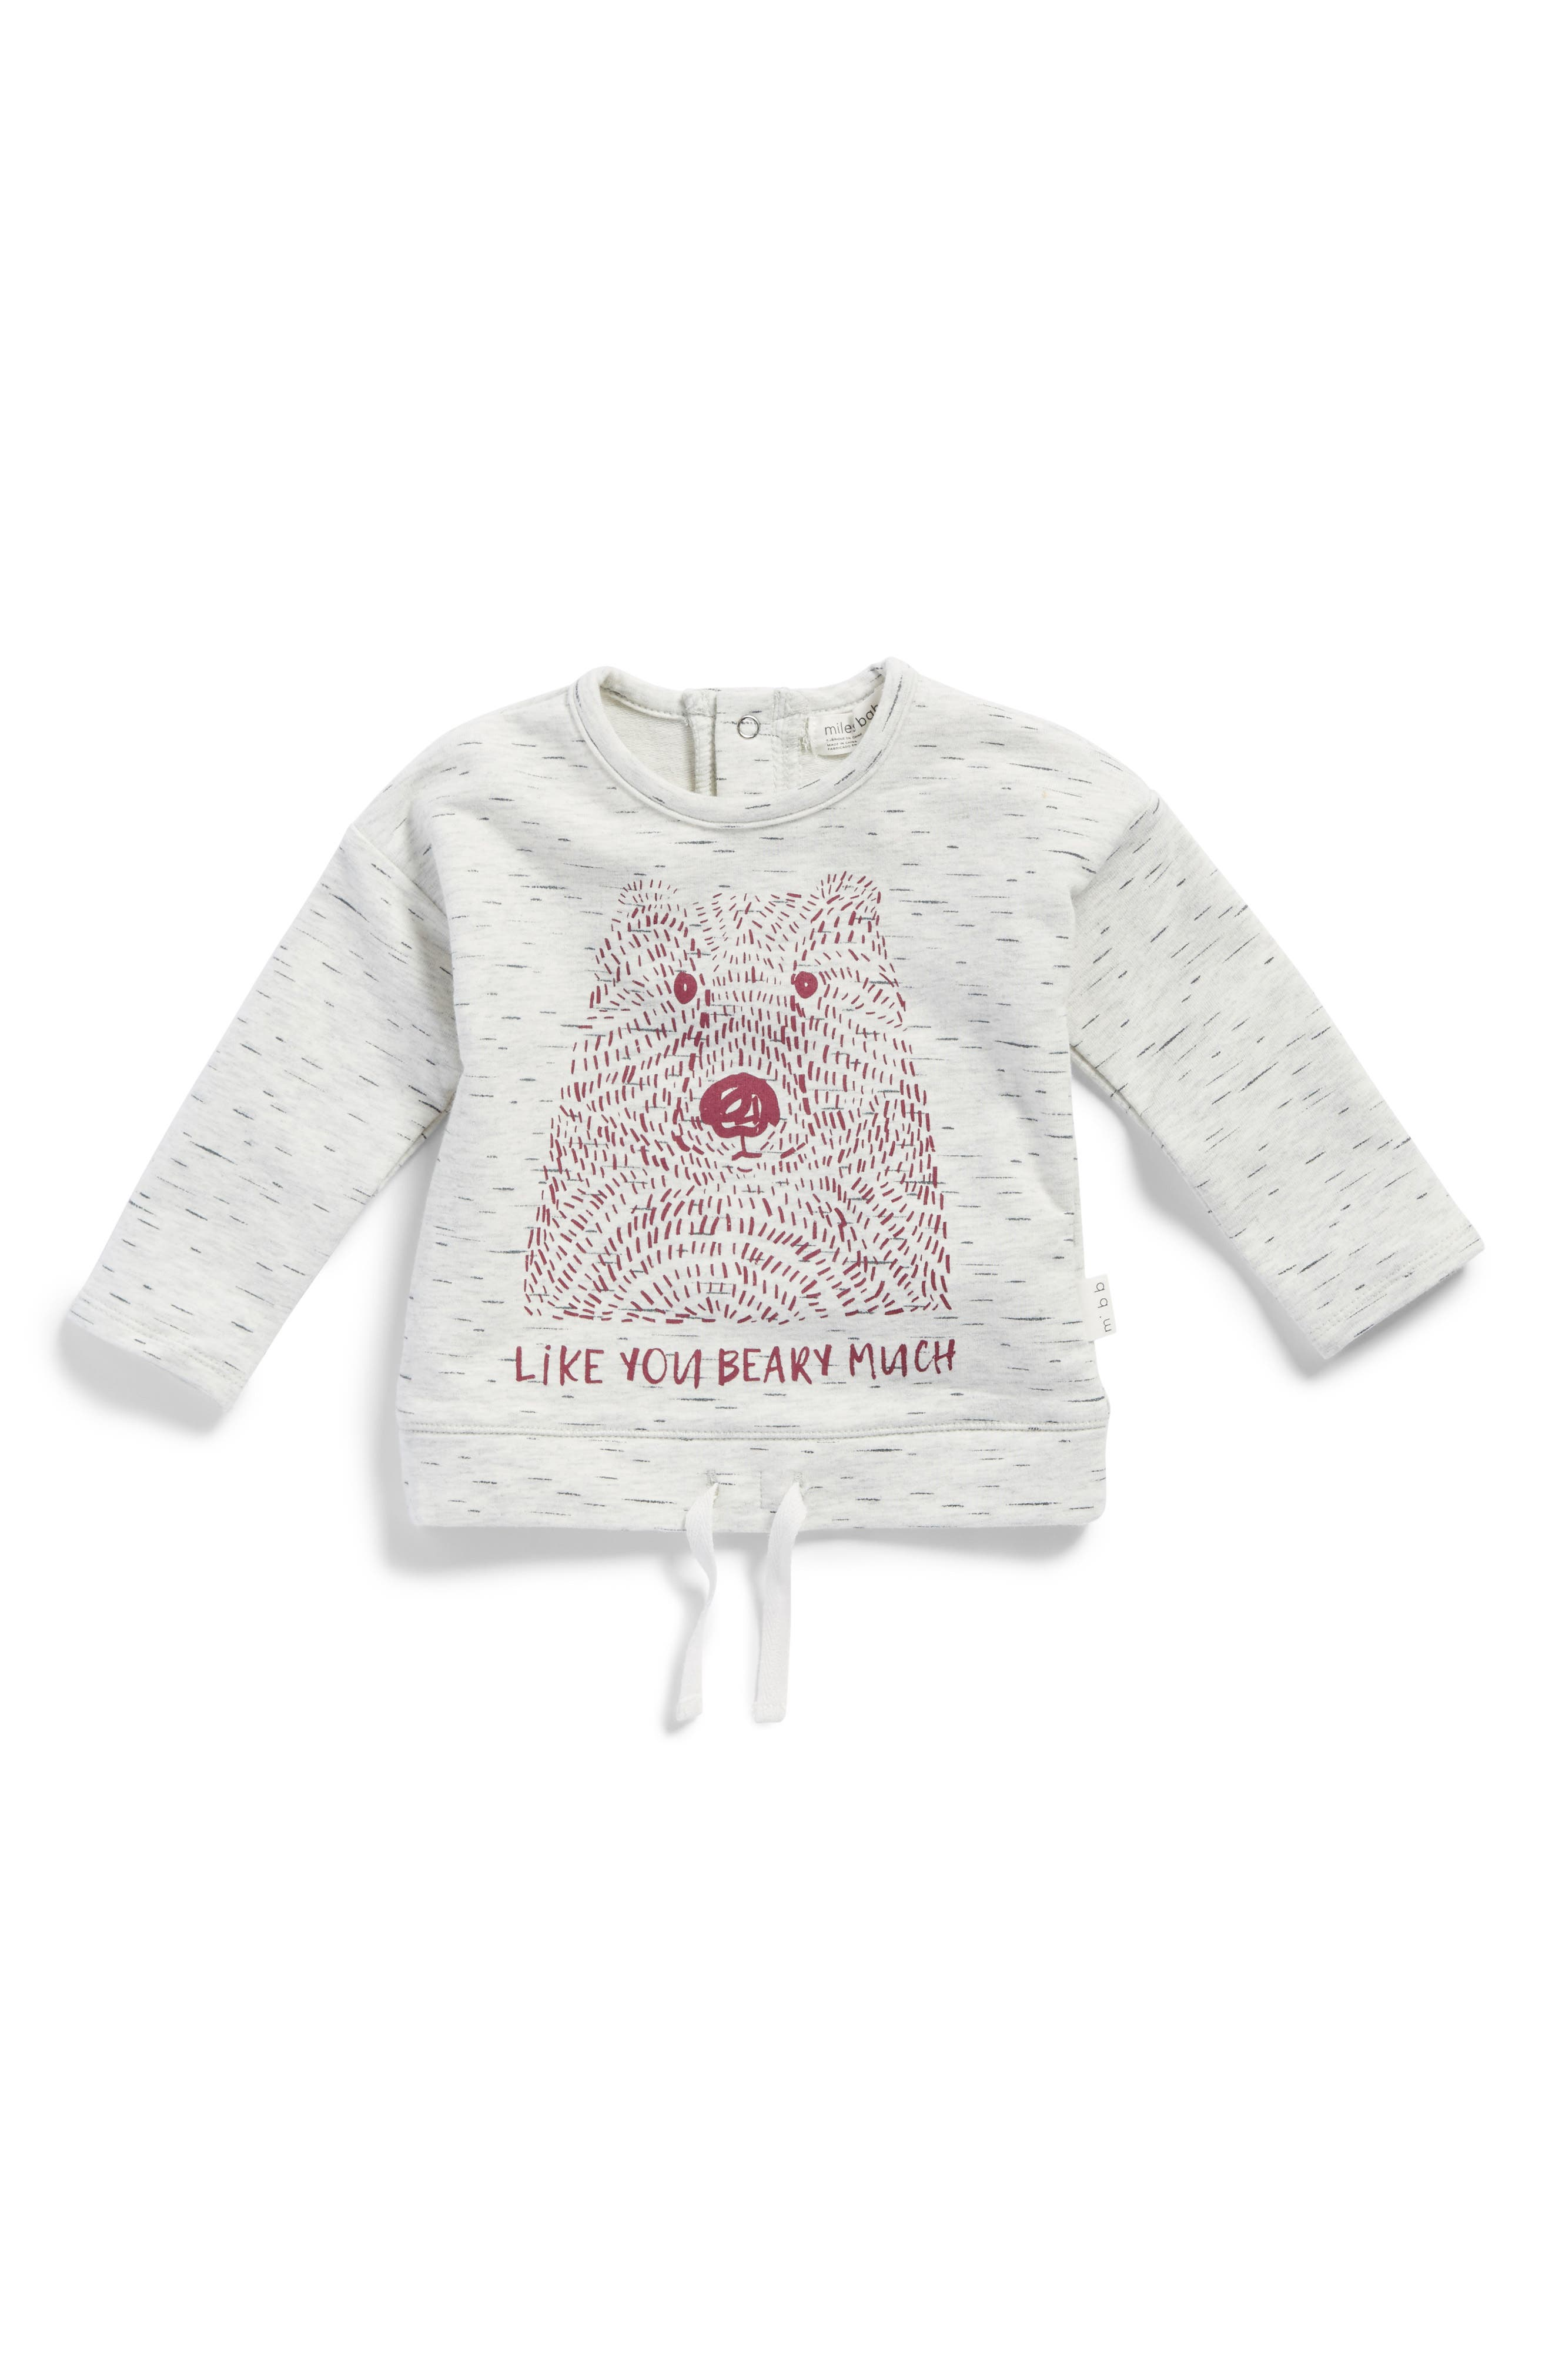 Like You Beary Much Graphic Tee,                             Main thumbnail 1, color,                             060